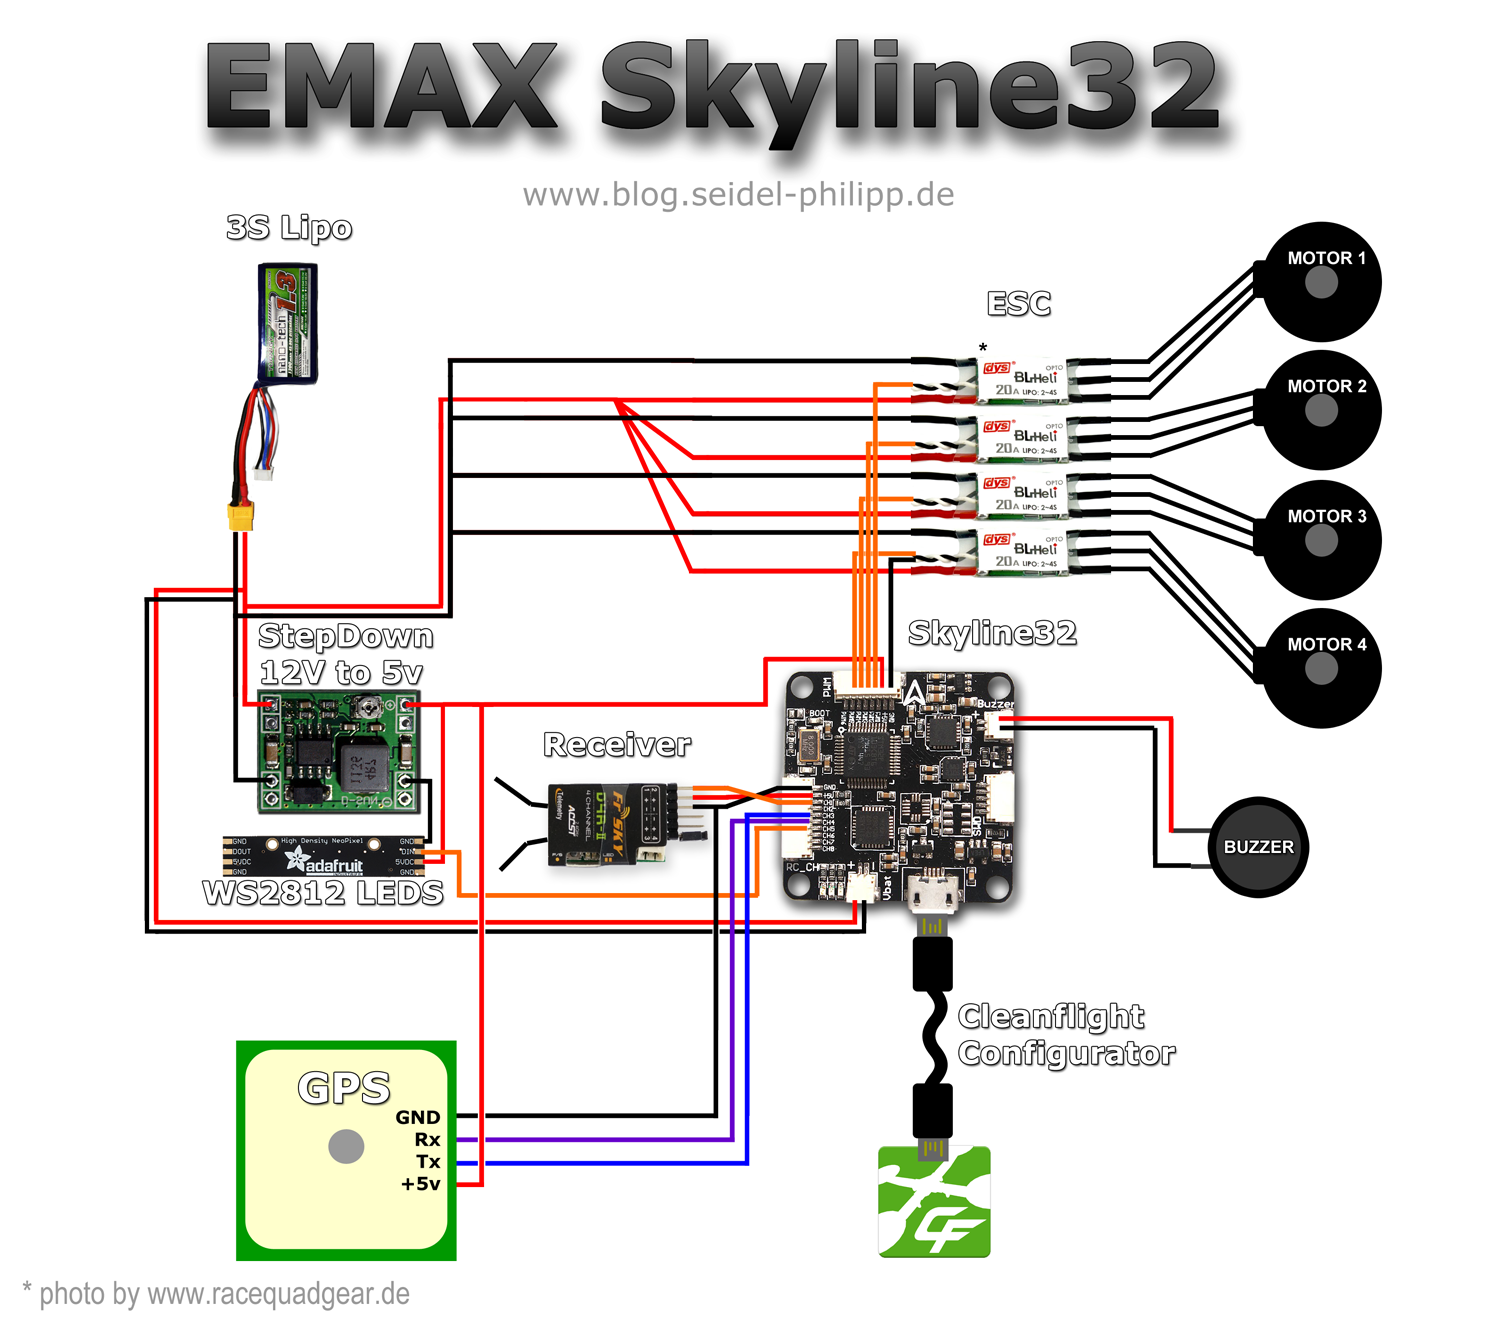 Basic Wiring Diagram Quadcopter Manual Schematic Of Atom Get Free Image About Skyline32 Naze32 Setup Guide To Motors And Esc